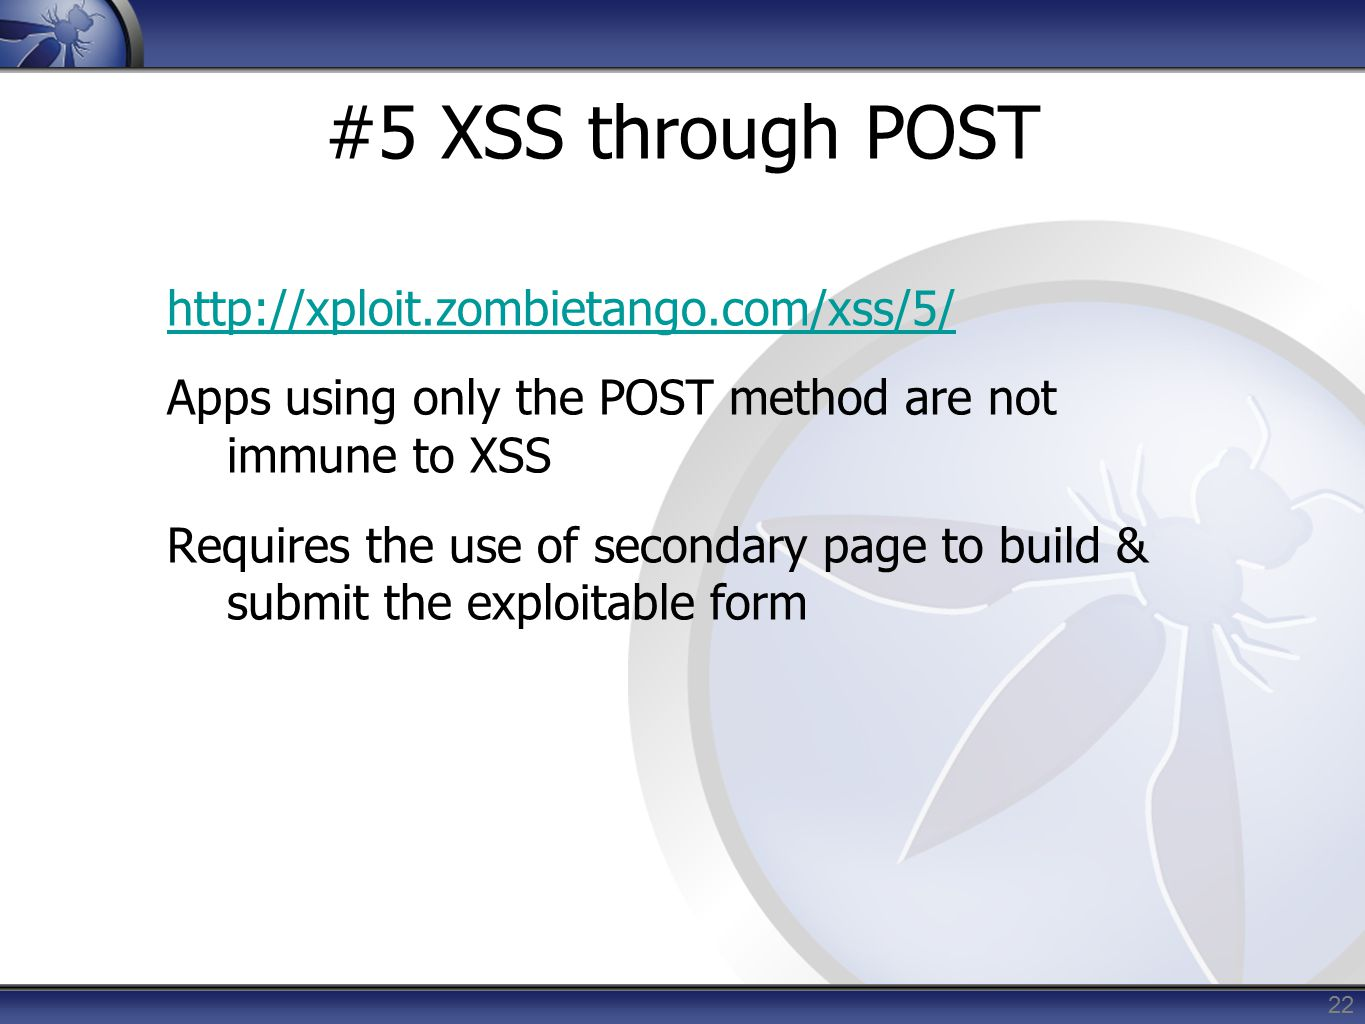 #5 XSS through POST http://xploit.zombietango.com/xss/5/ Apps using only the POST method are not immune to XSS Requires the use of secondary page to build & submit the exploitable form 22